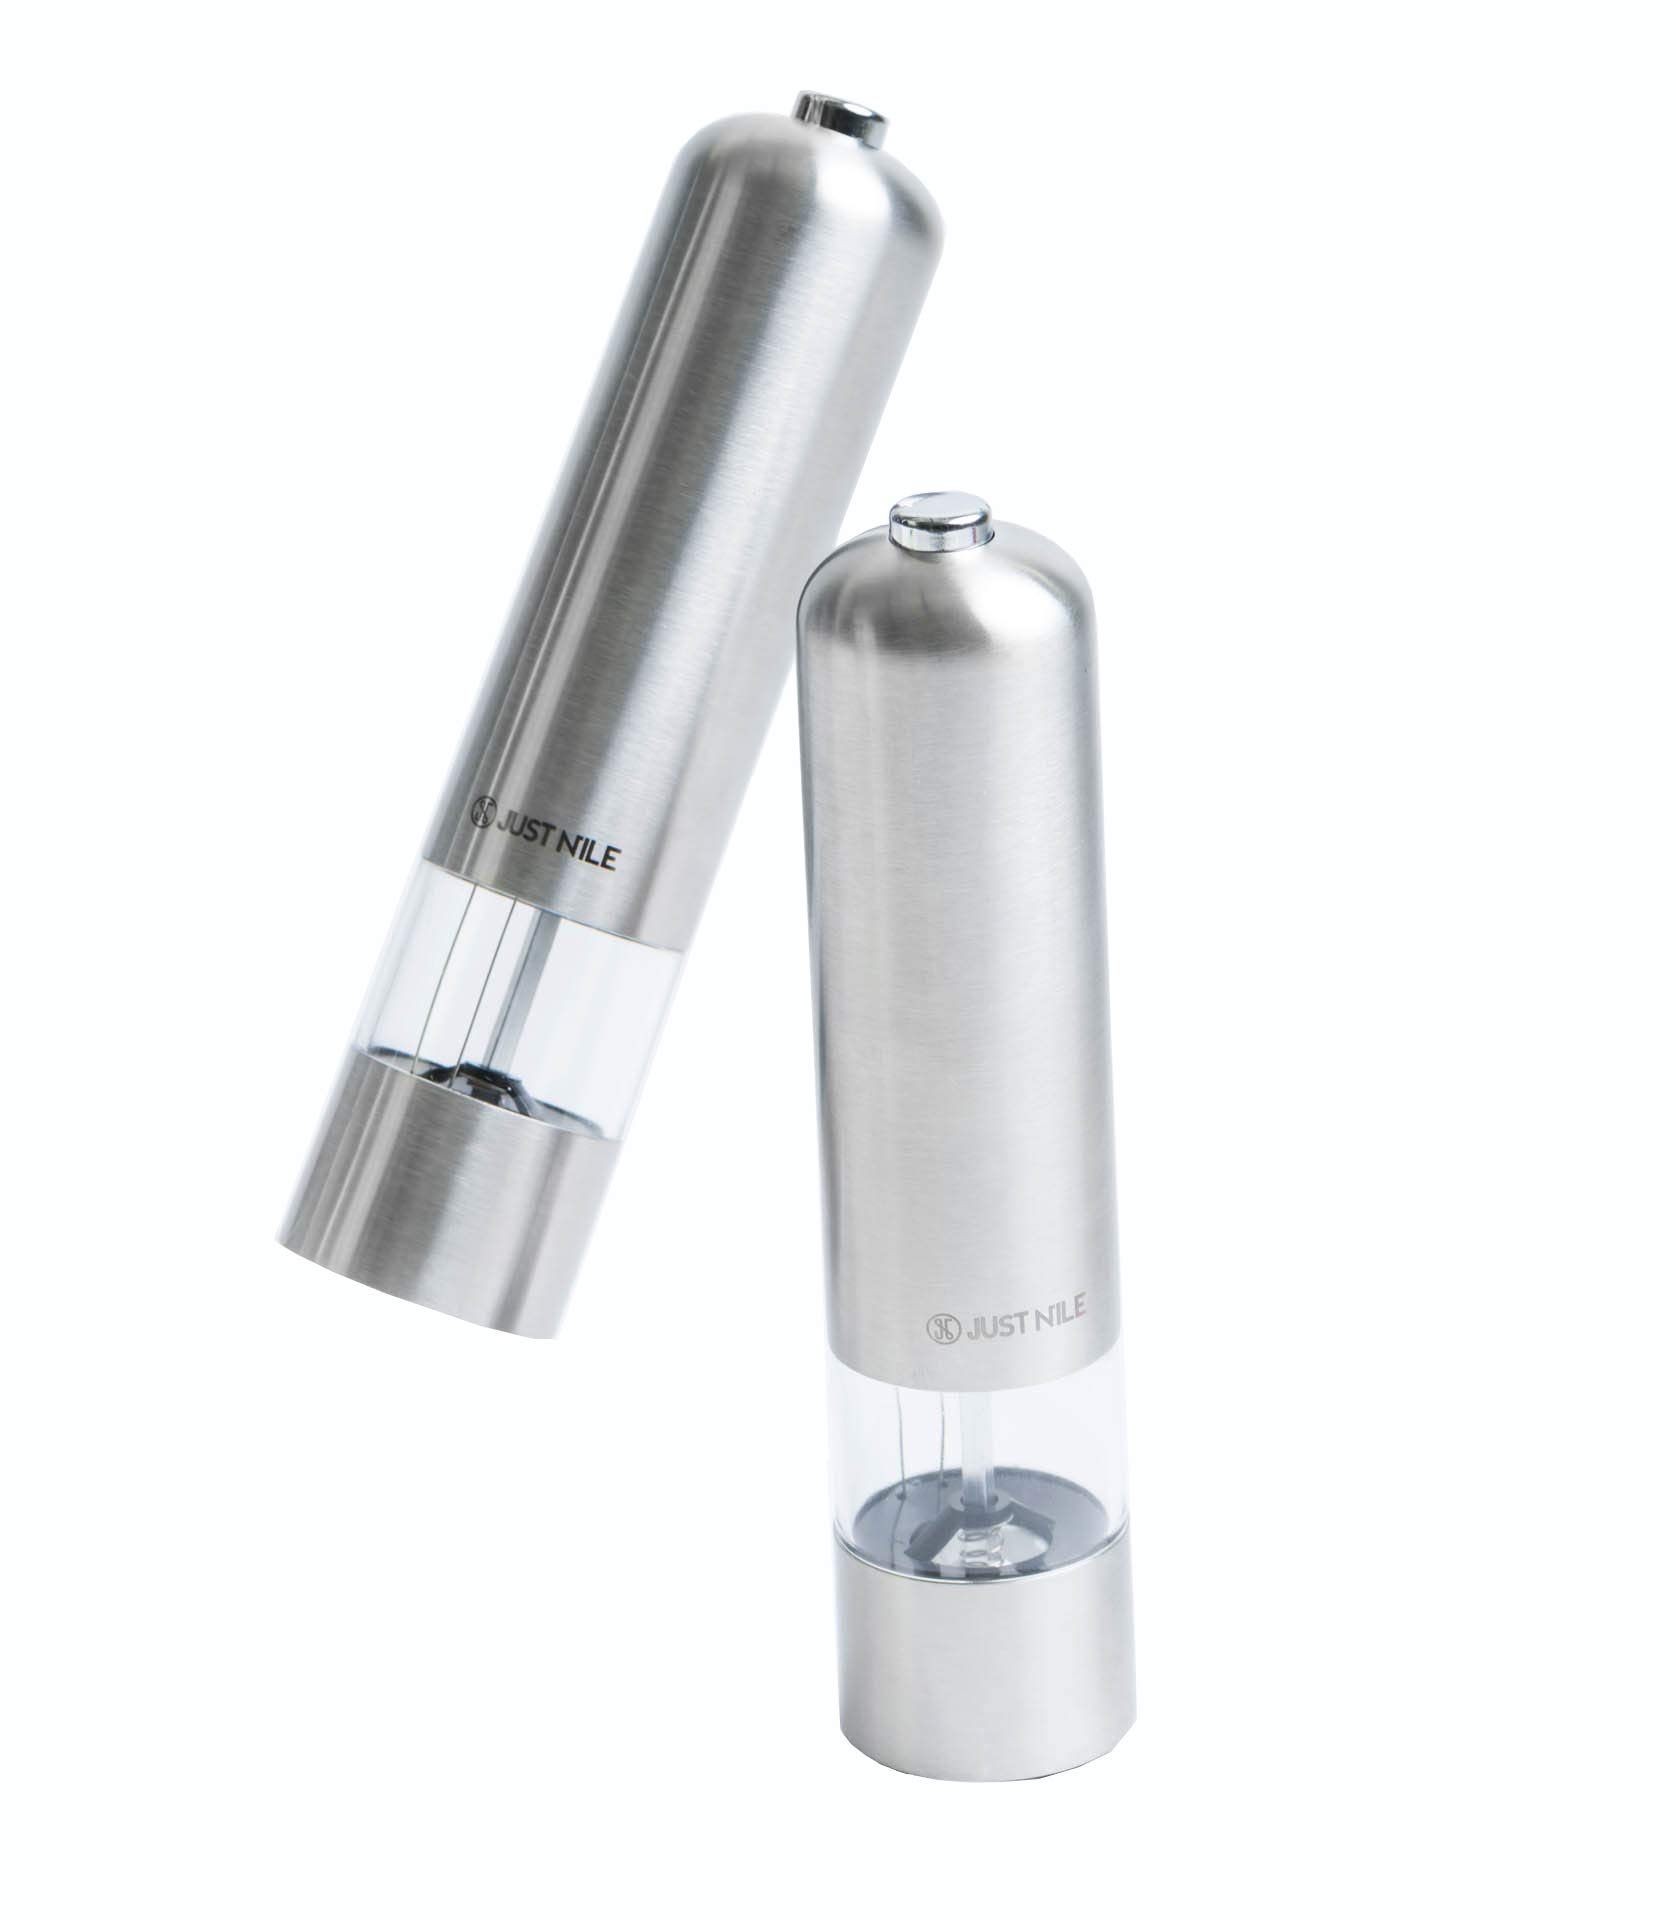 JustNile Electric Salt and Pepper Grinder Set - Single Touch Battery Operated, LED Light and Easy Adjustable Coarseness | Pack of 2 | each Measured 1.97'' x 8.66'' | Holds Up To 5 Ounce of the Spice